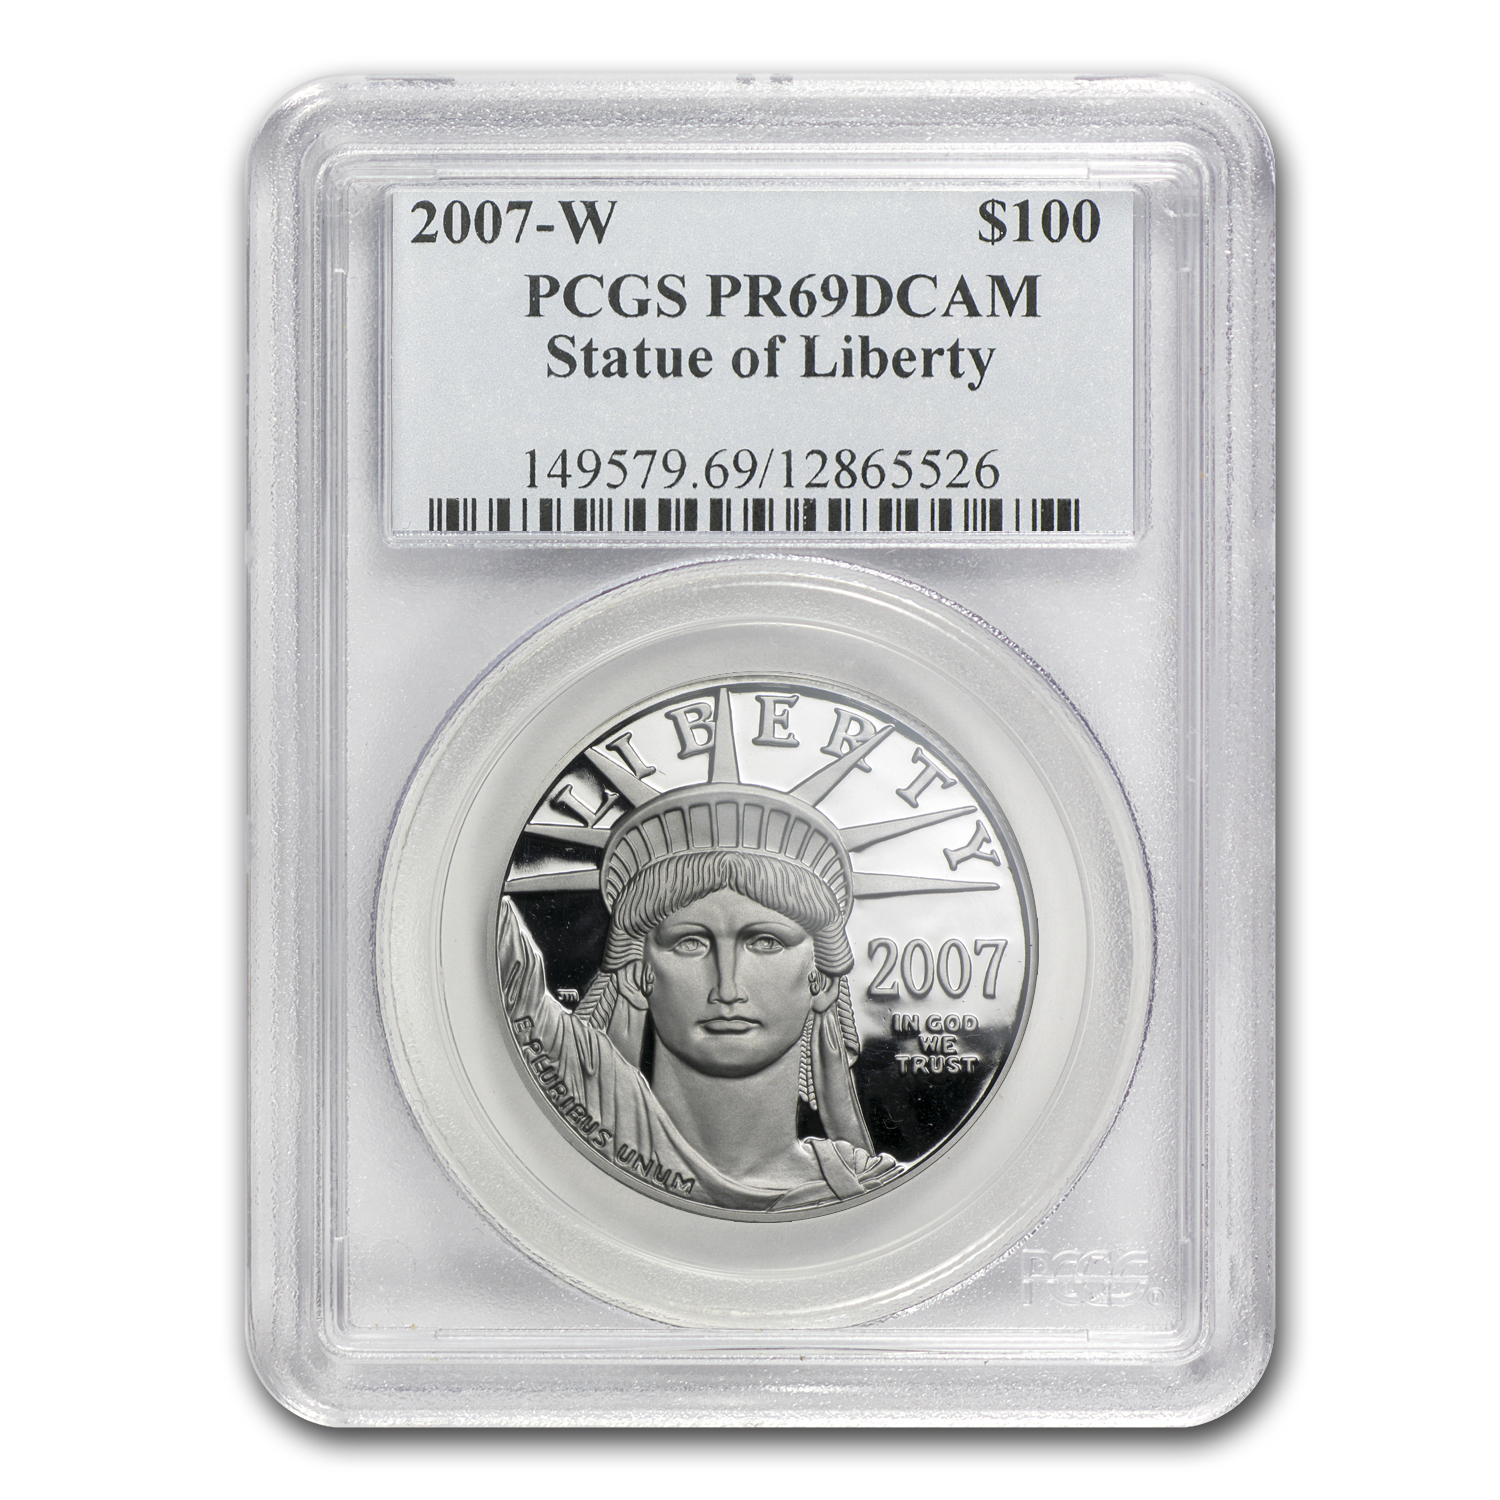 2007-W 1 oz Proof Platinum American Eagle PR-69 PCGS